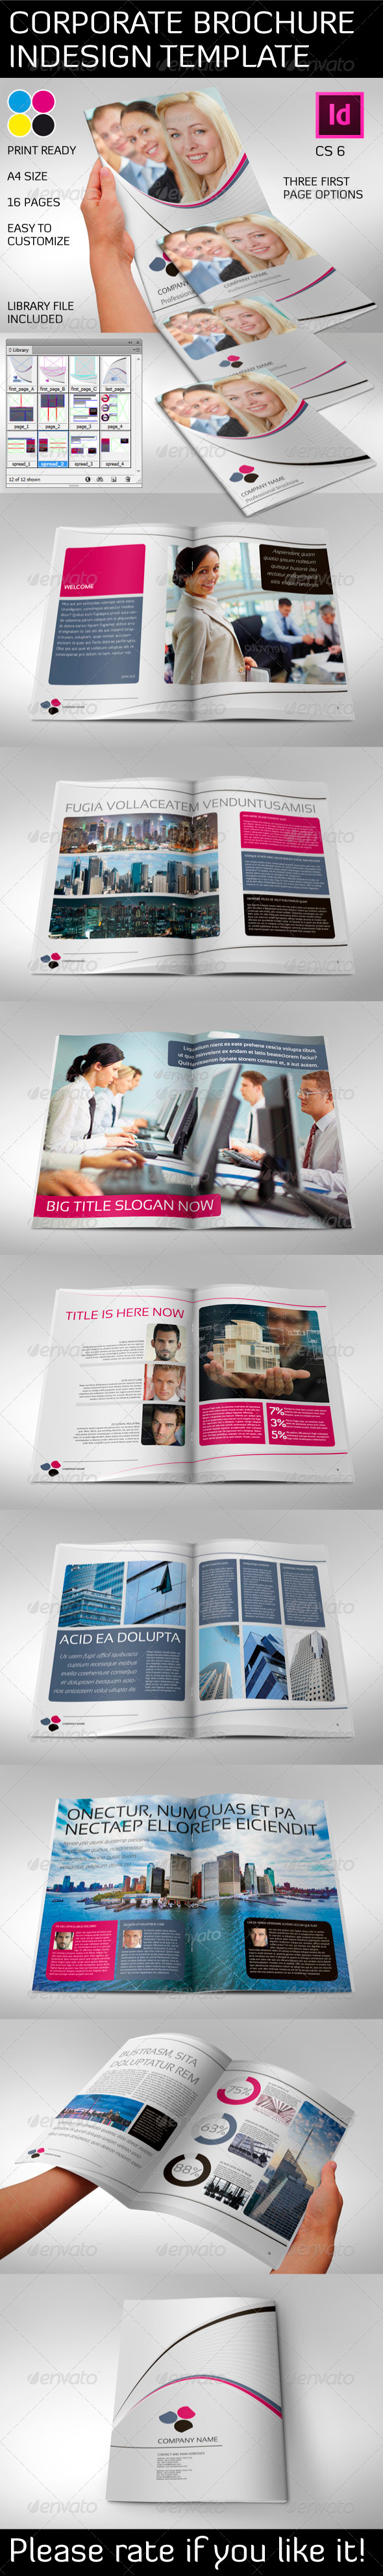 Corporate Brochure 16 Pages A4 - Corporate Brochures